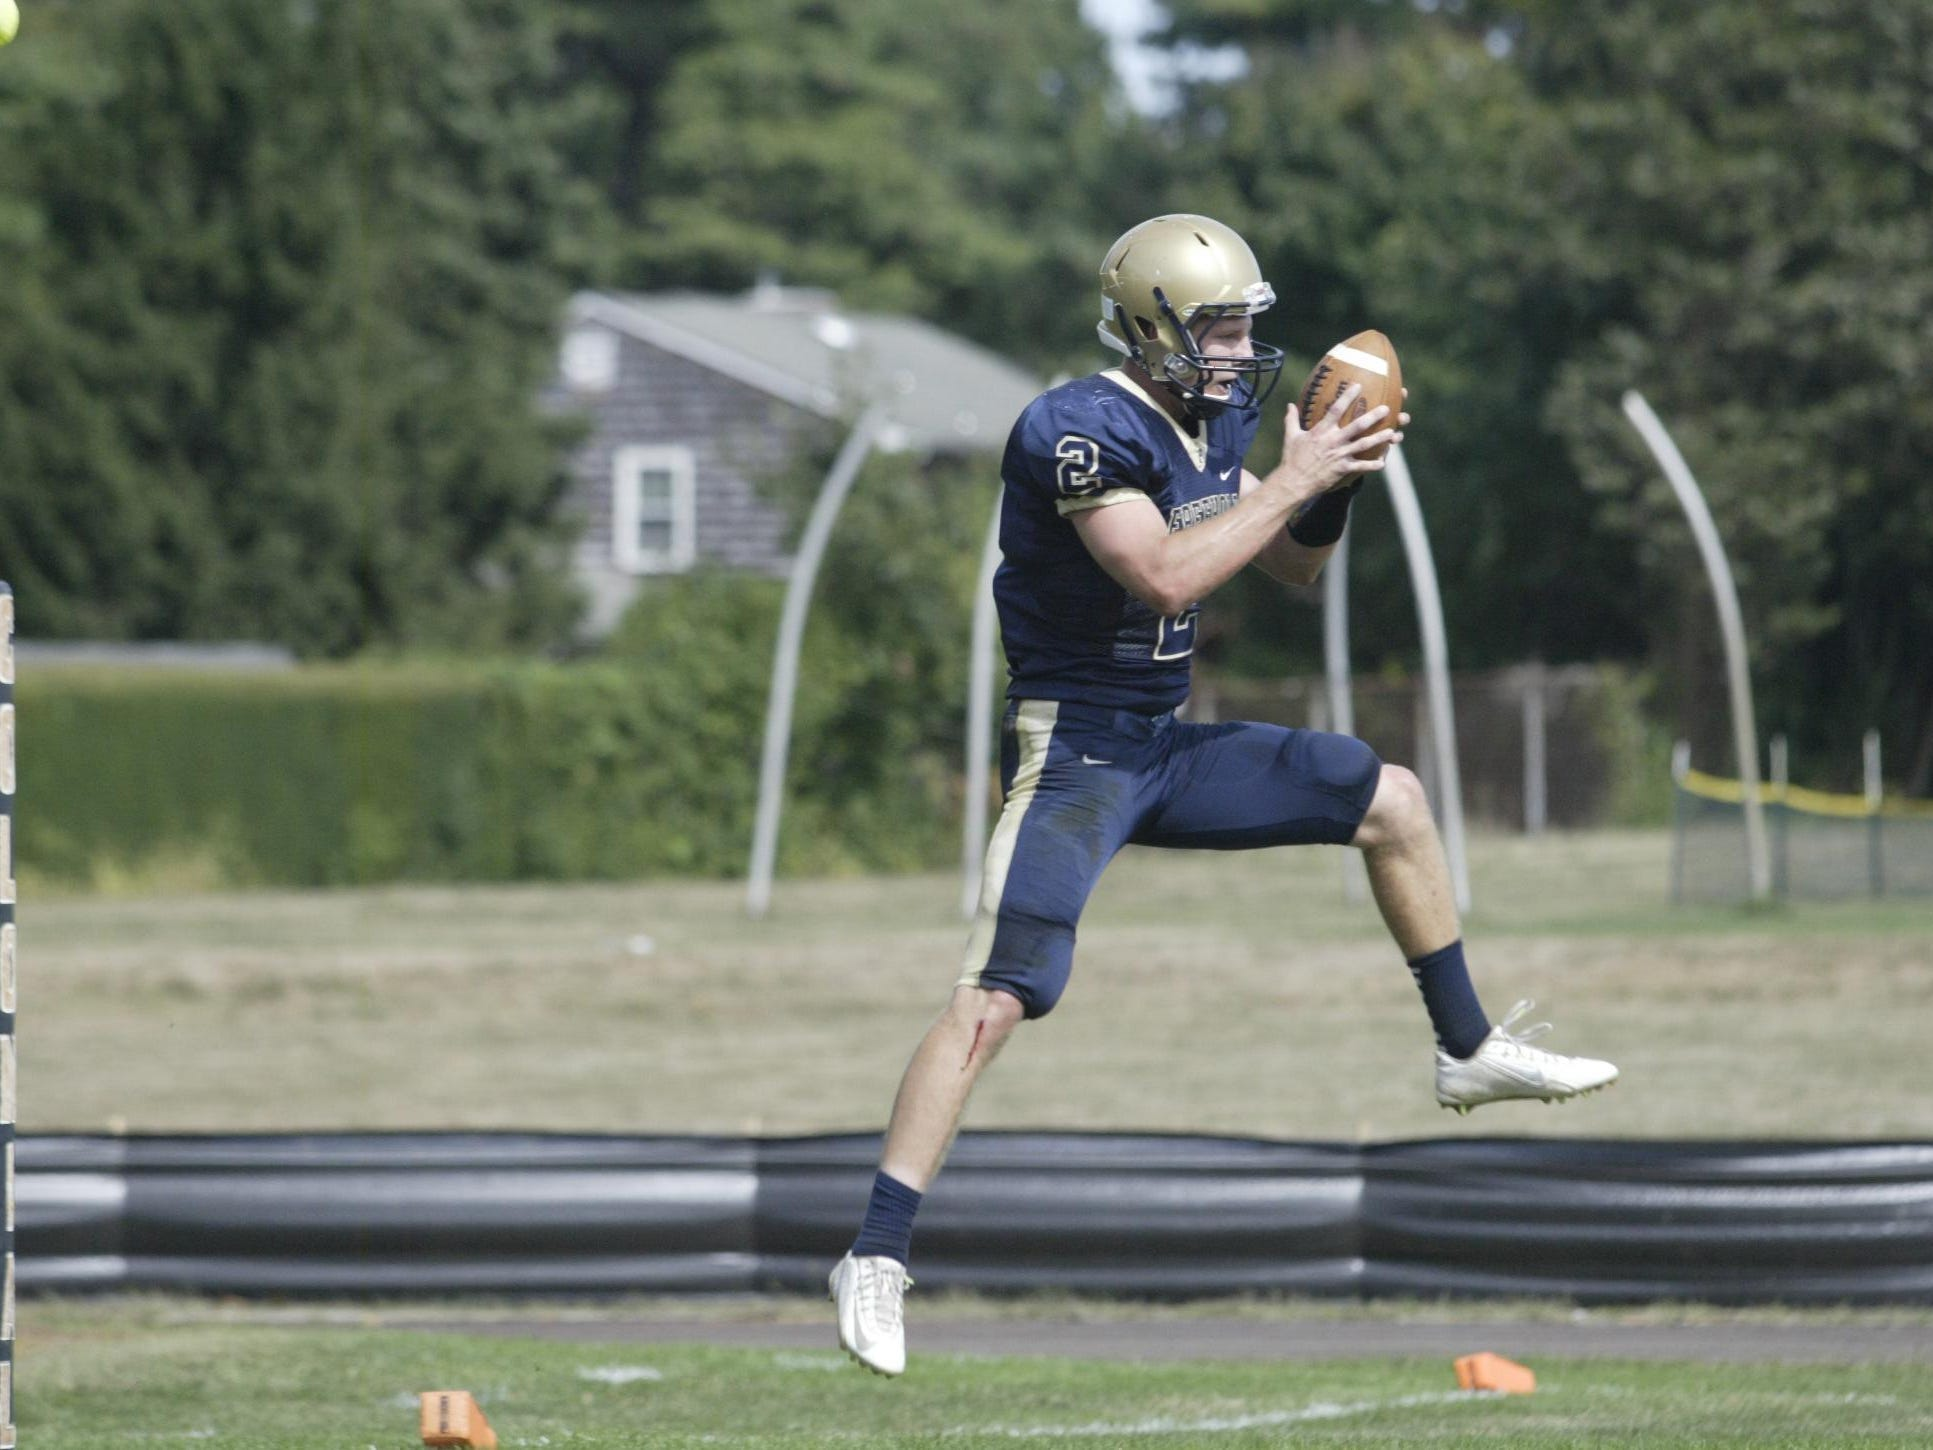 Freehold High School punter Jake Curry leaps in the air to corral an errand toss from the center in a Shore Conference game against Middletown North High School, Saturday afternoon, at Freehold.